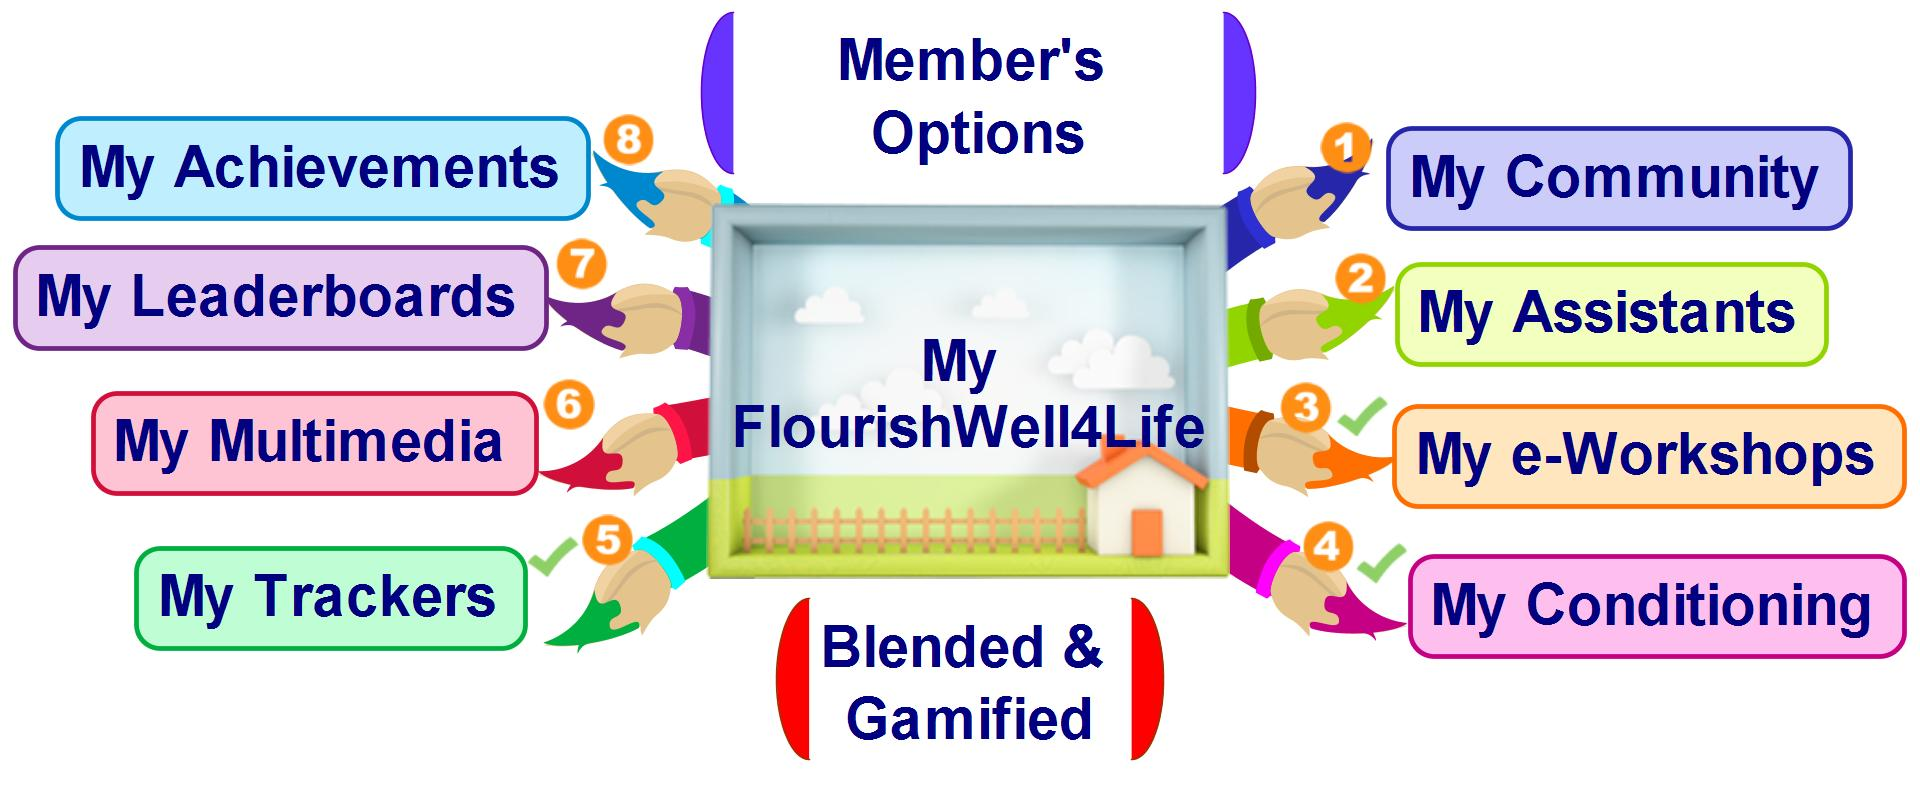 my flourishwelllife options jpeg the options available on each member s individualized site are summarized in the picture below and explained in more detail thereafter